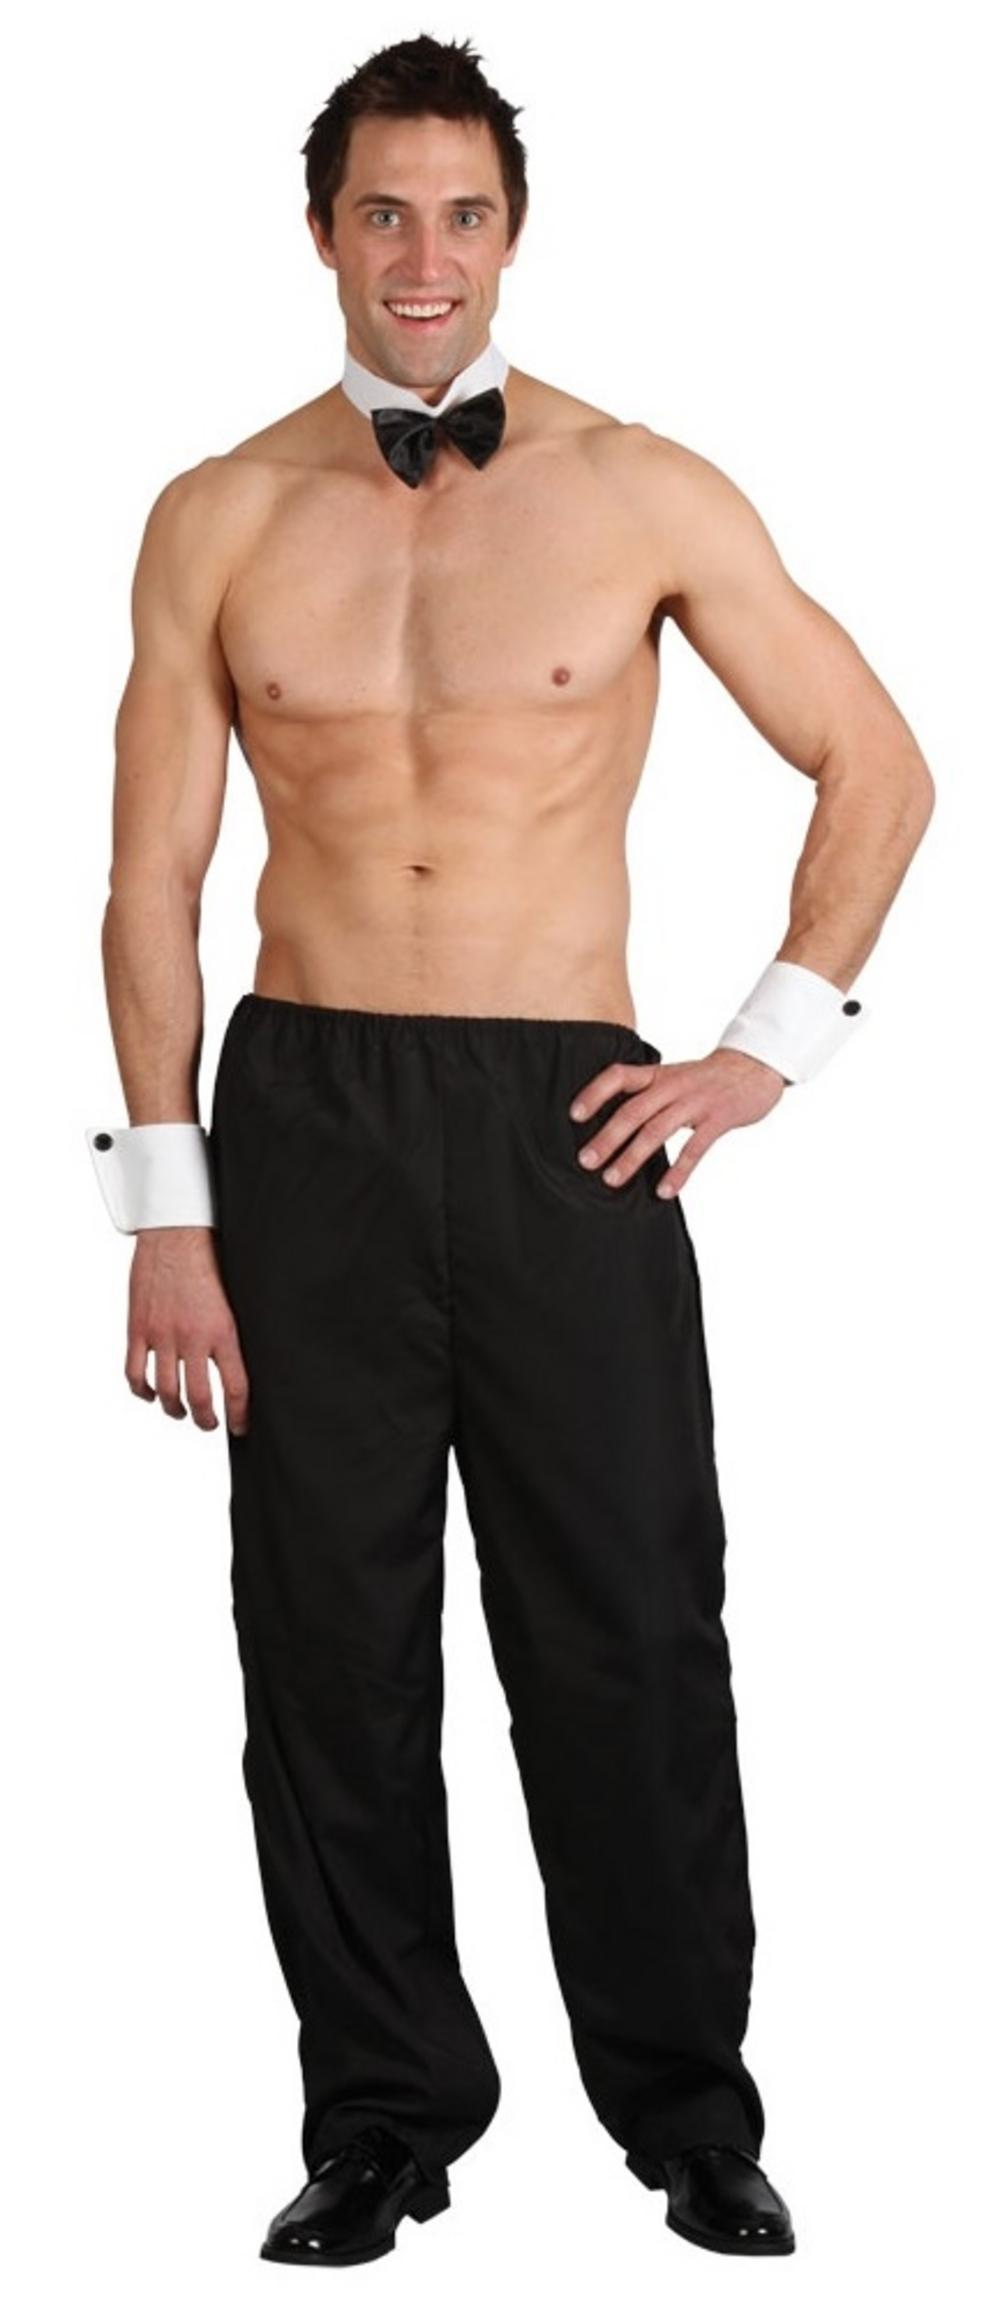 man Stripper pants for